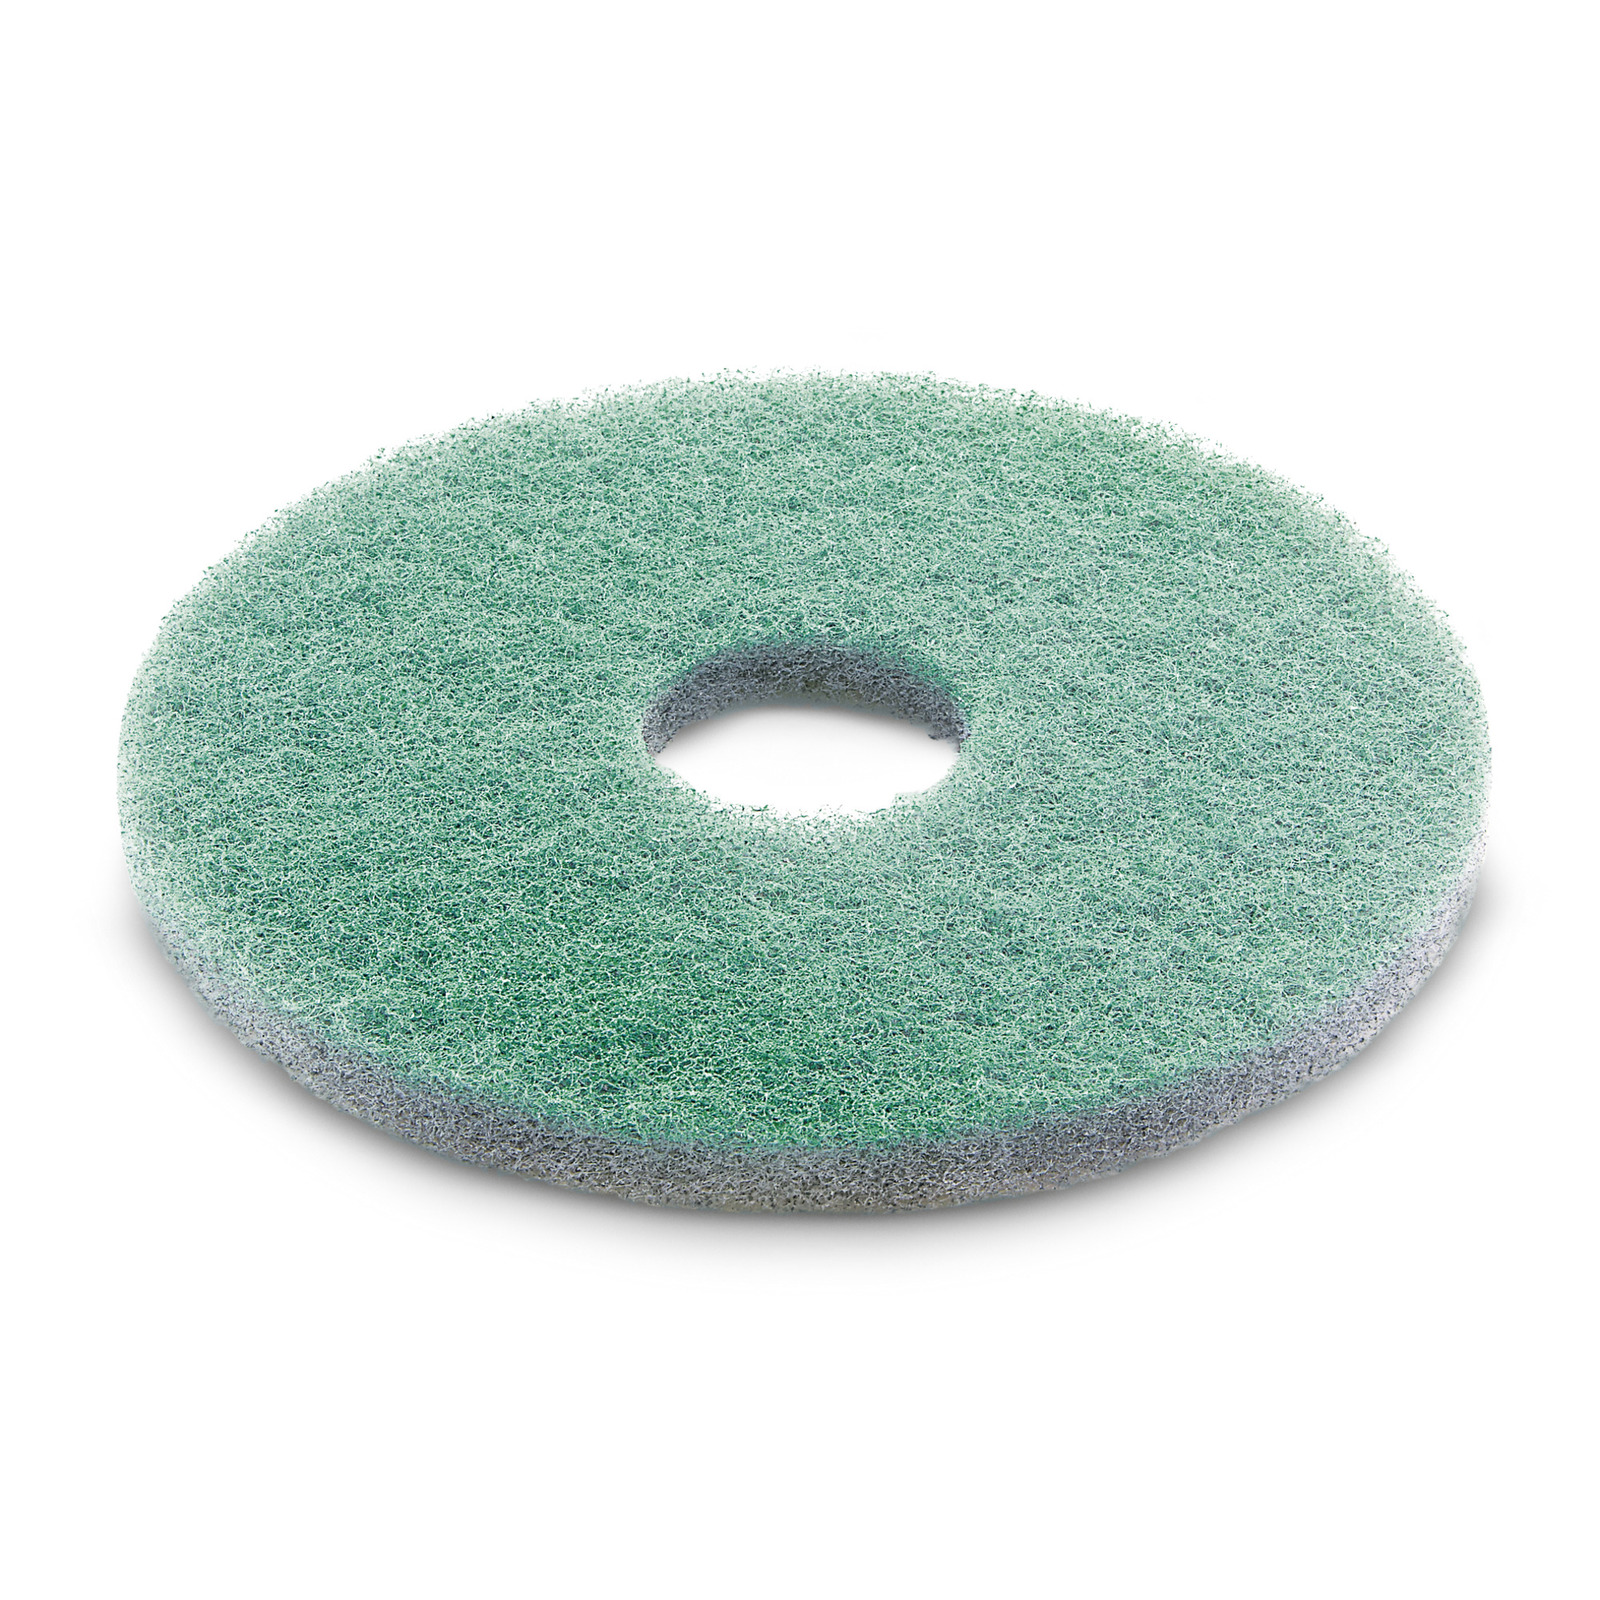 Kärcher  Diamond pad, fine, green, 306 mm